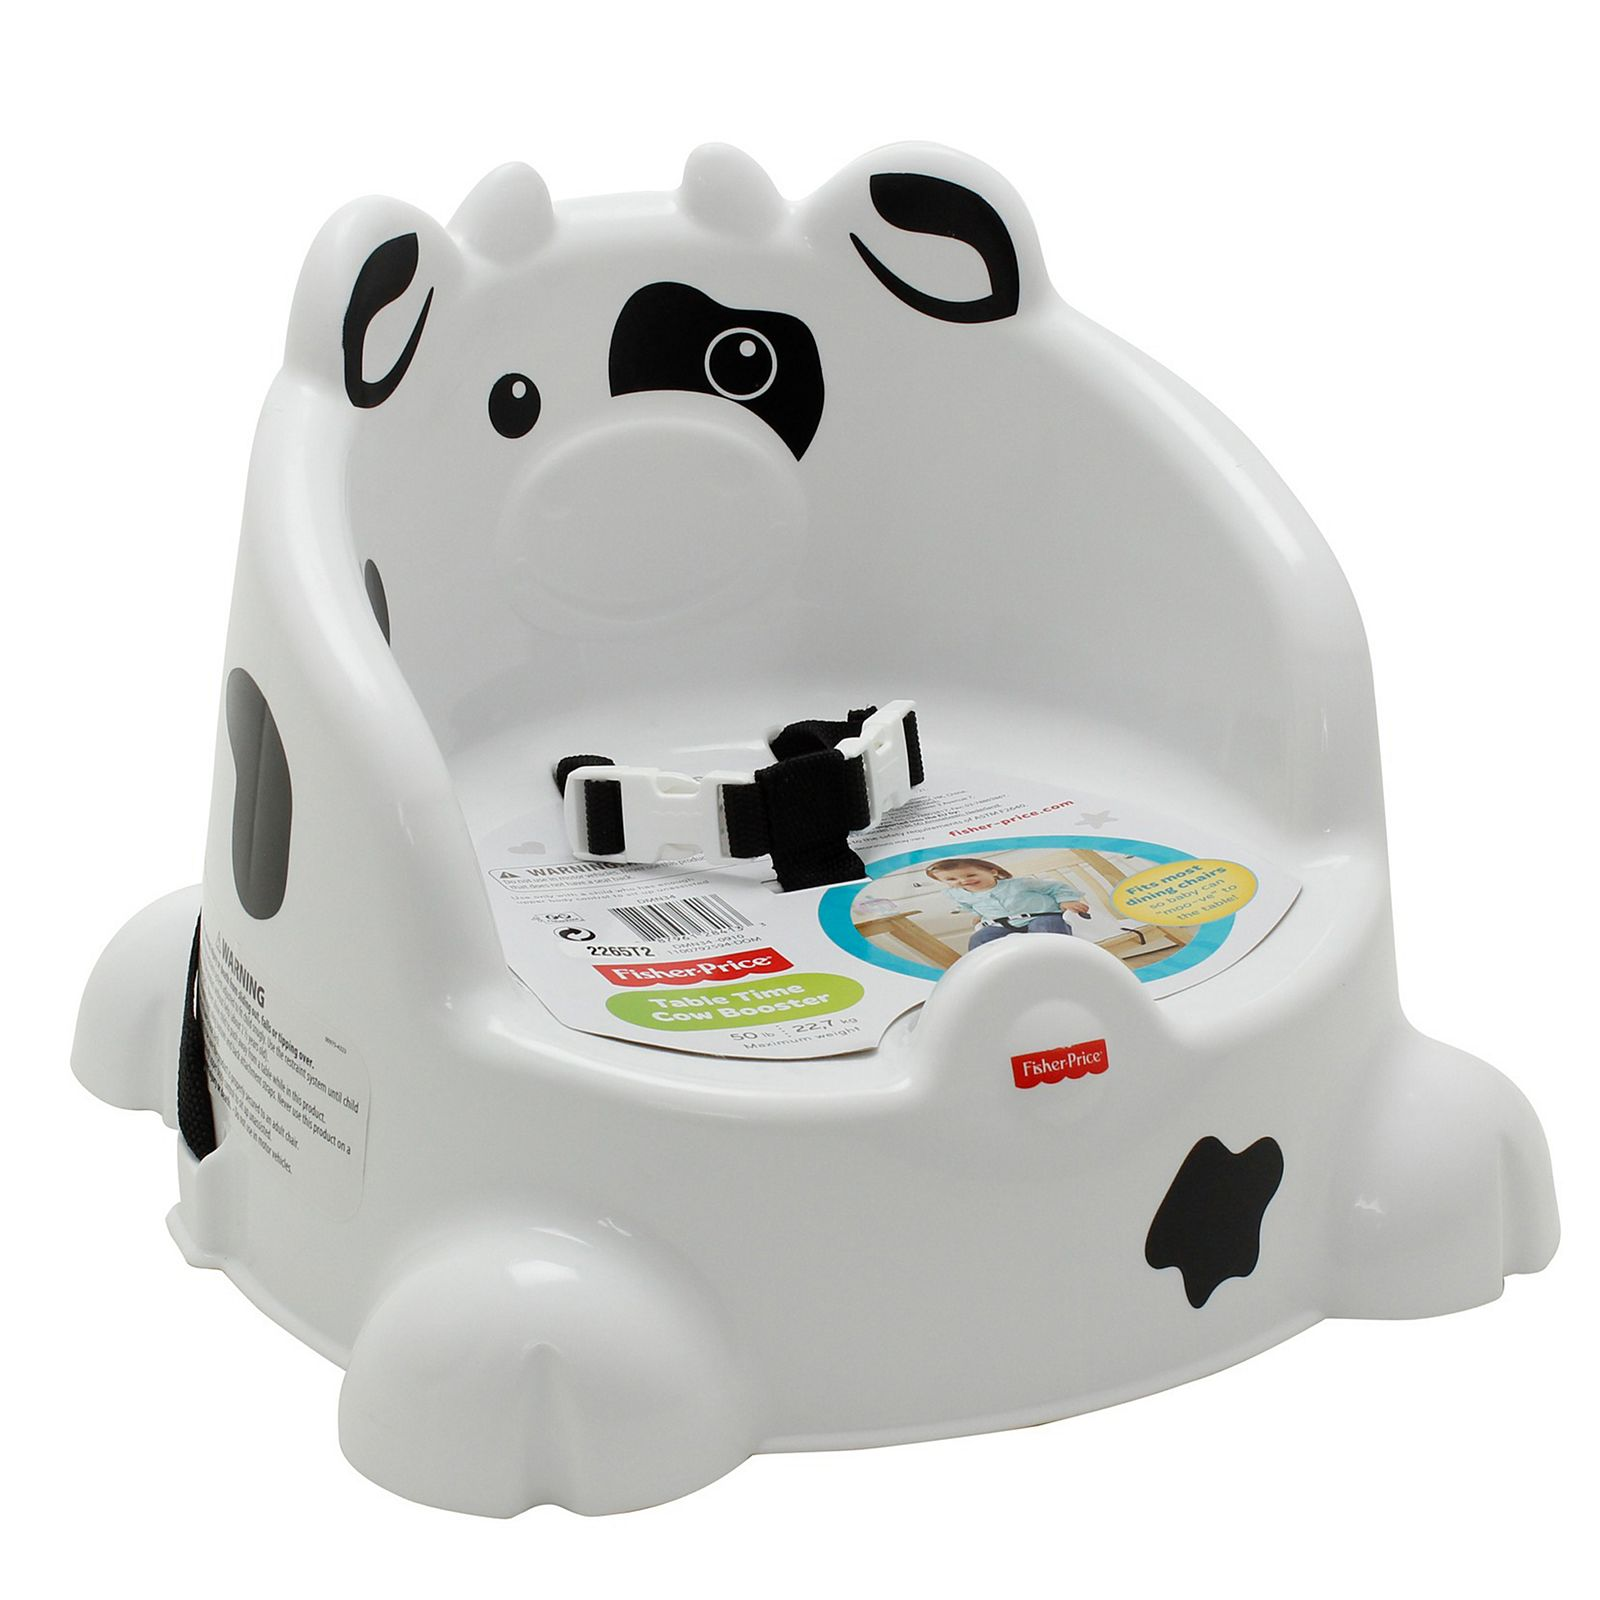 Table Time Cow Booster Fisher Price Healthy Care Deluxe Blue Seat